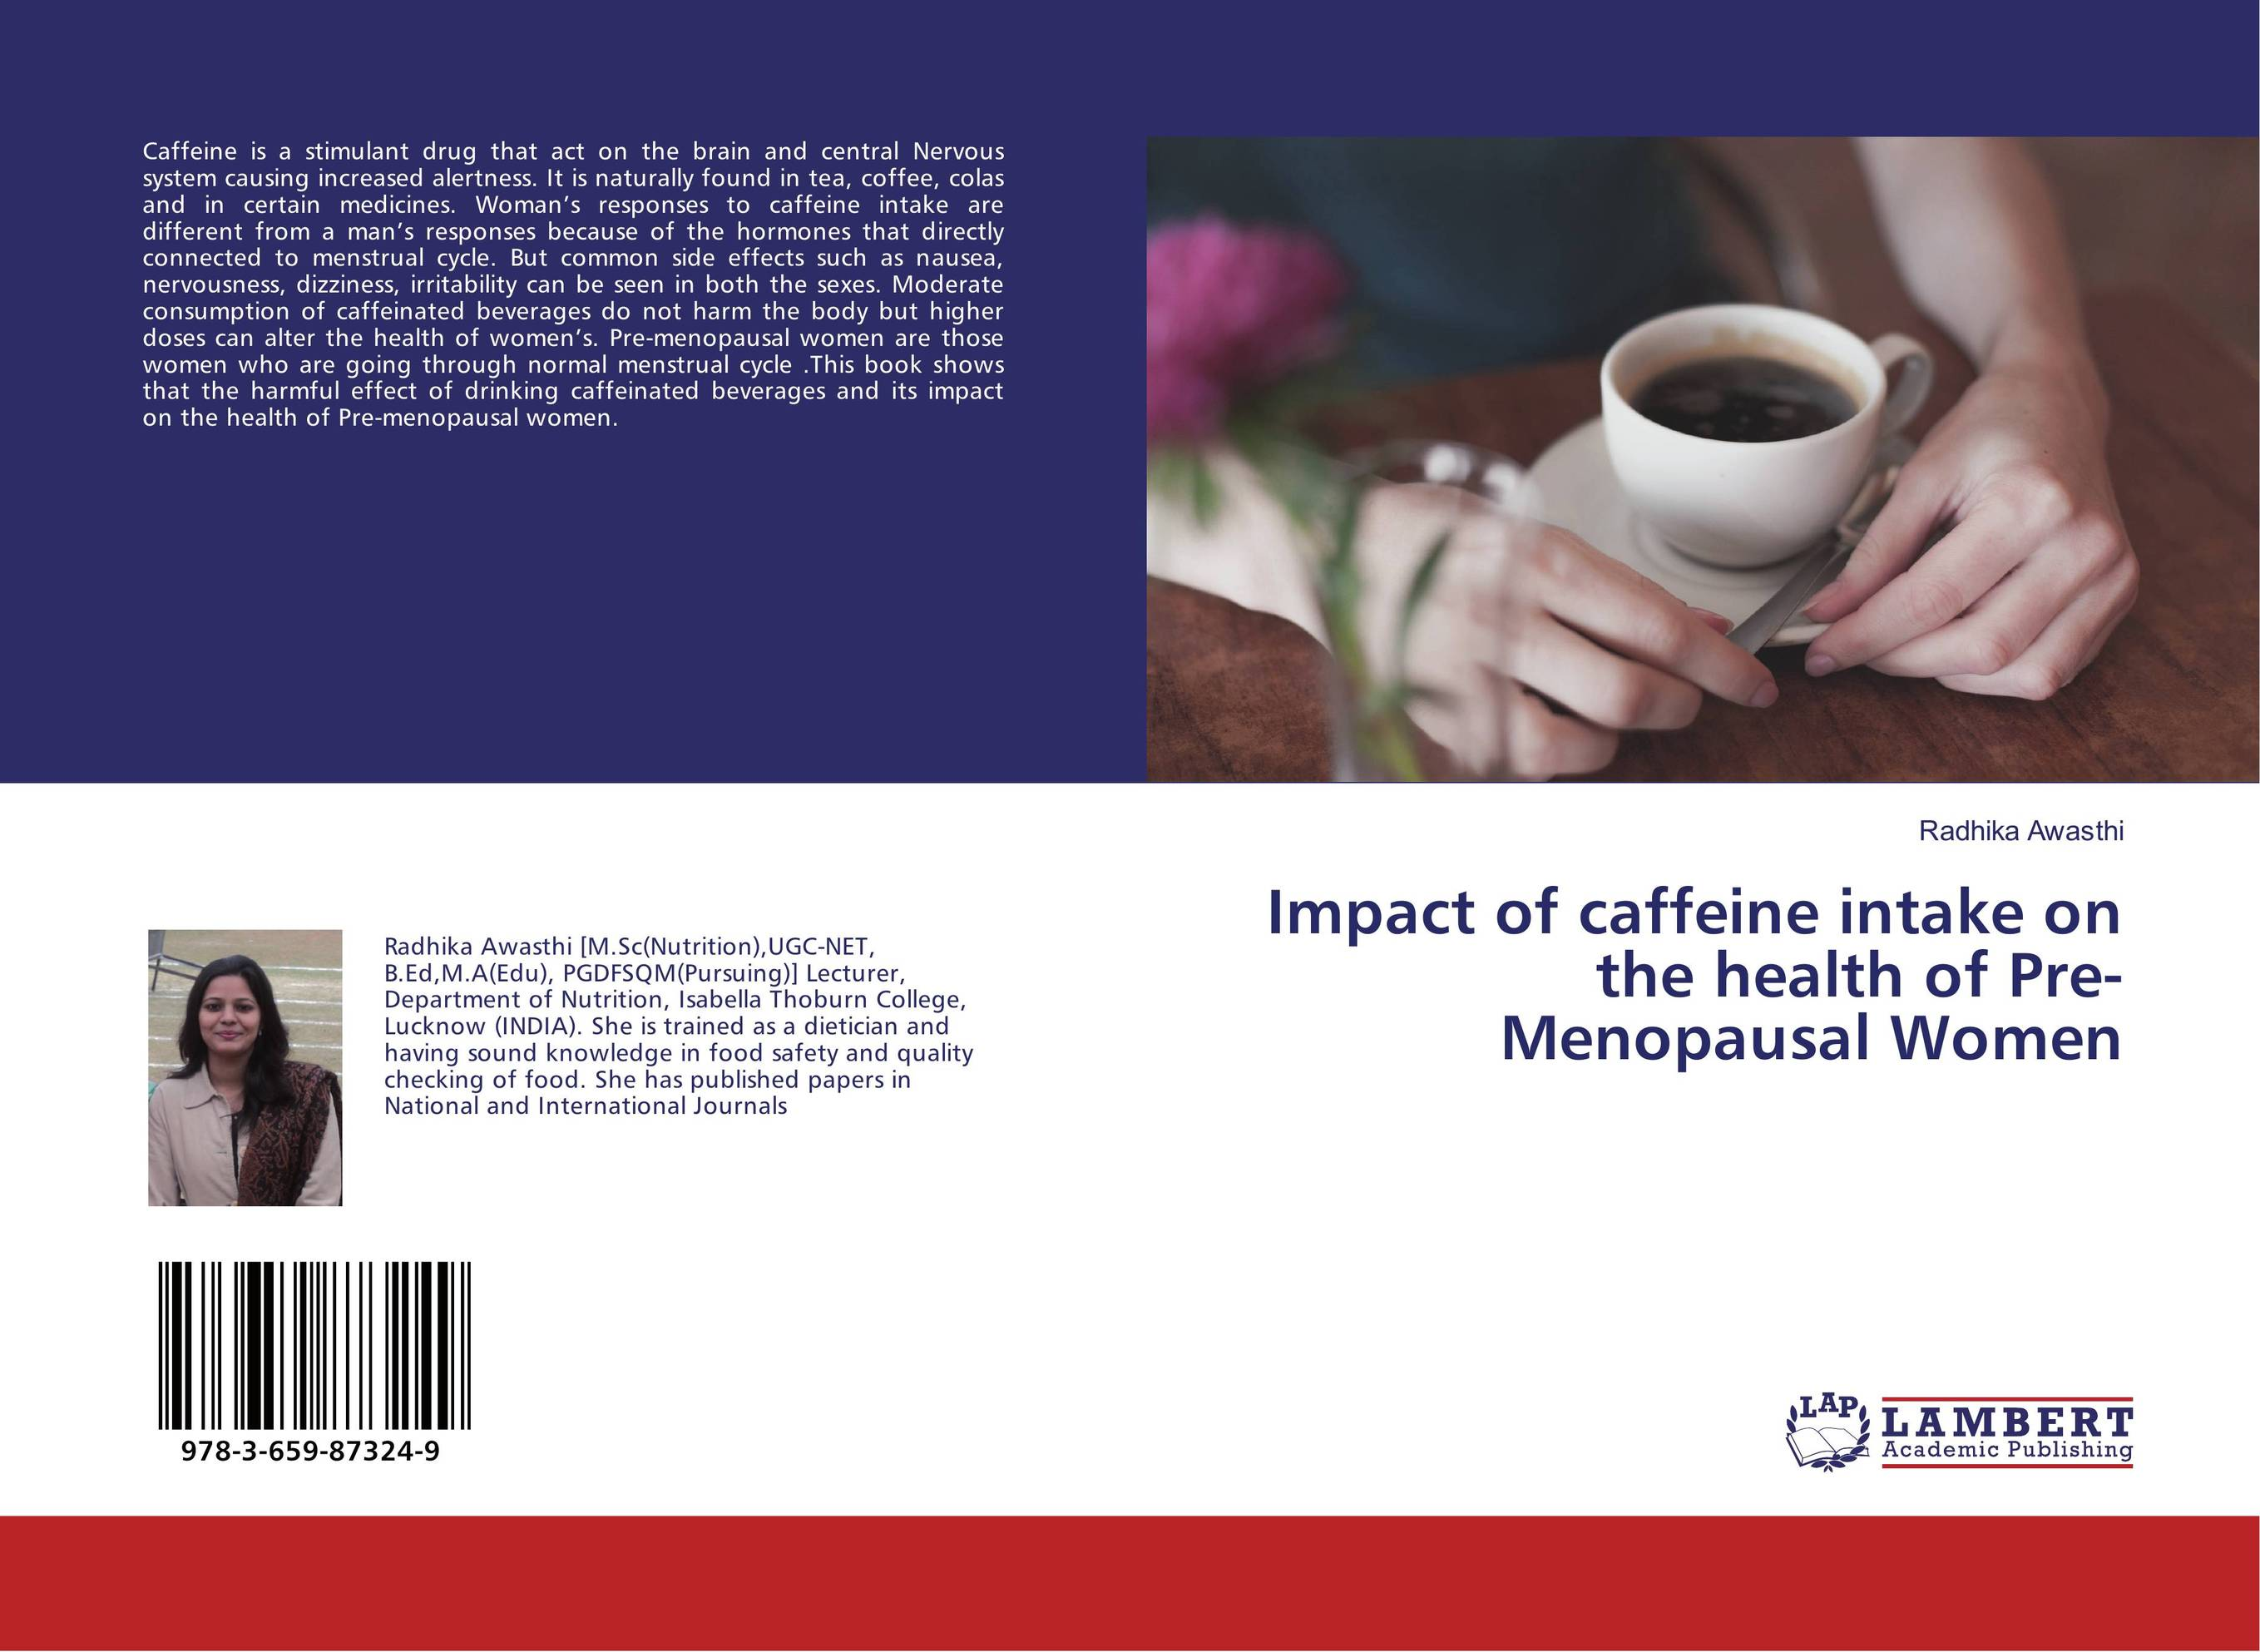 Impact of caffeine intake on the health of Pre-Menopausal Women